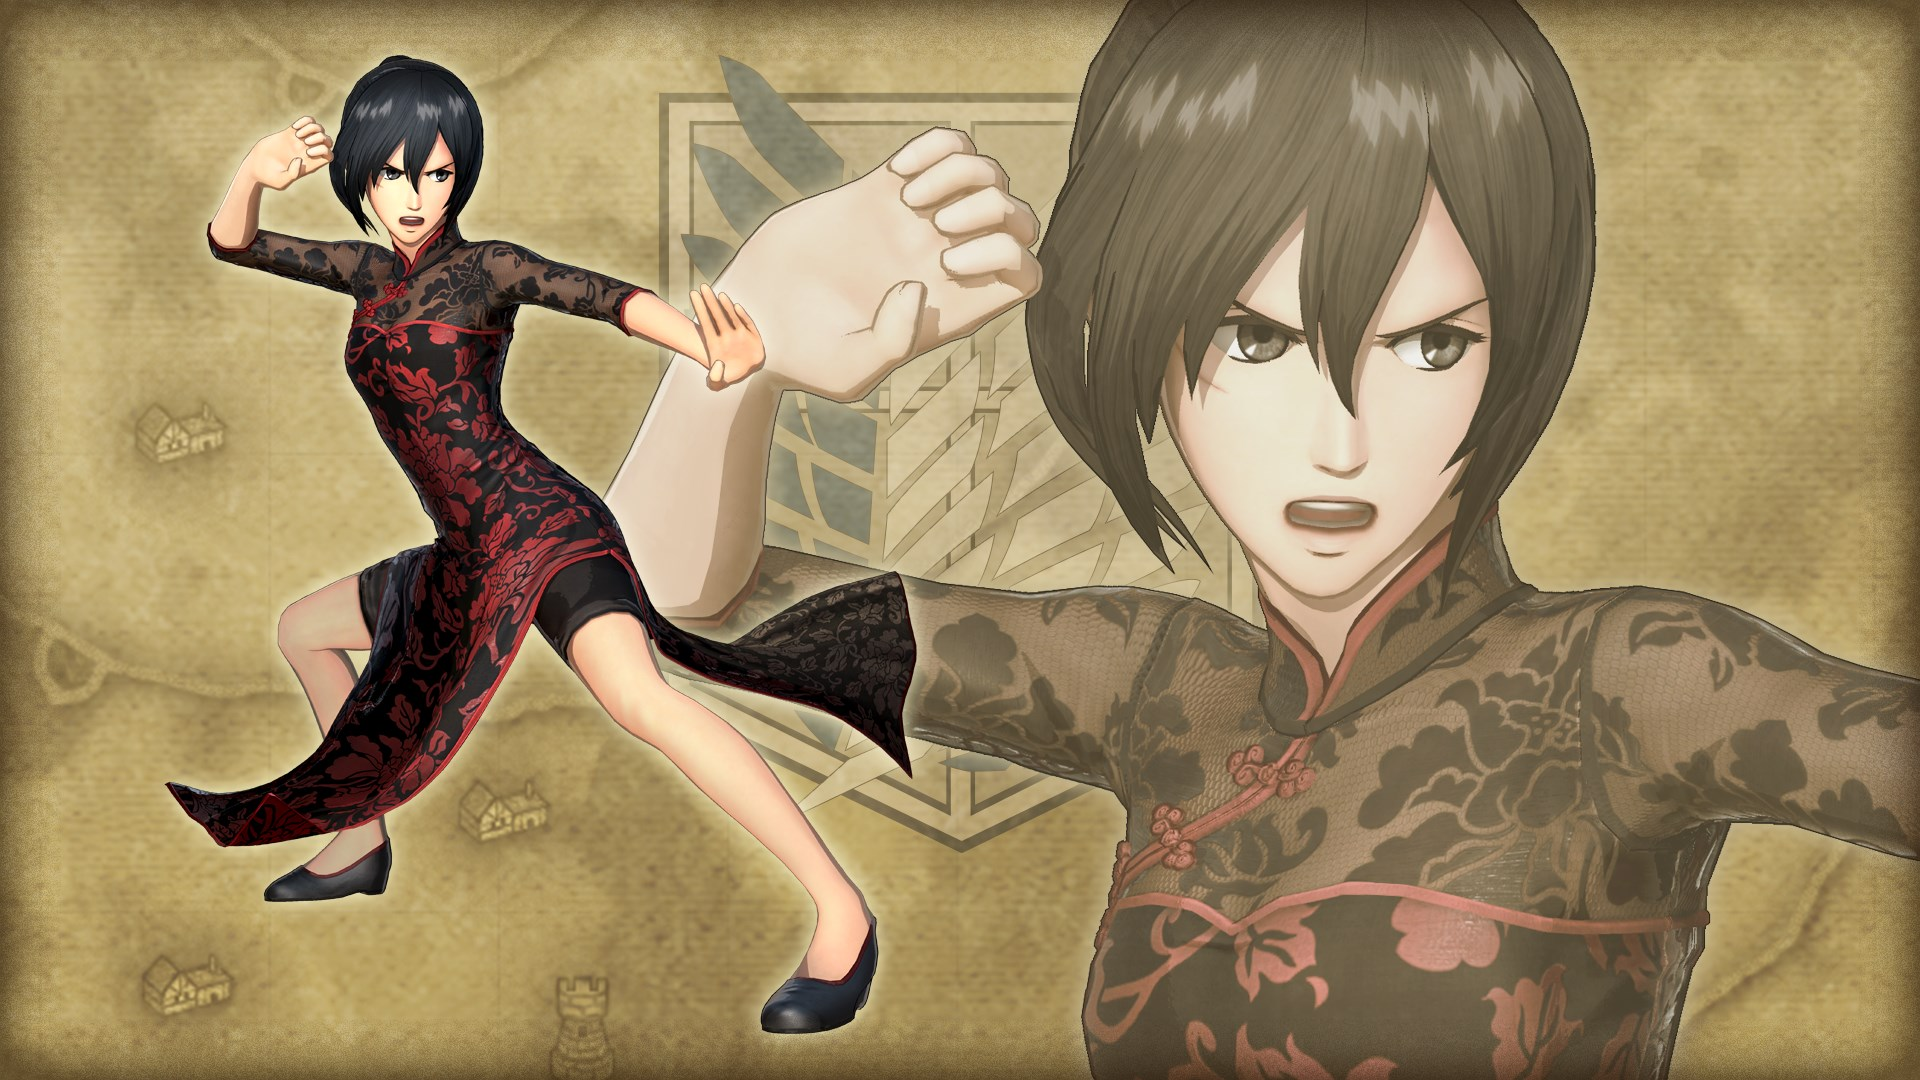 Costume supplémentaire pour Mikasa, robe chinoise